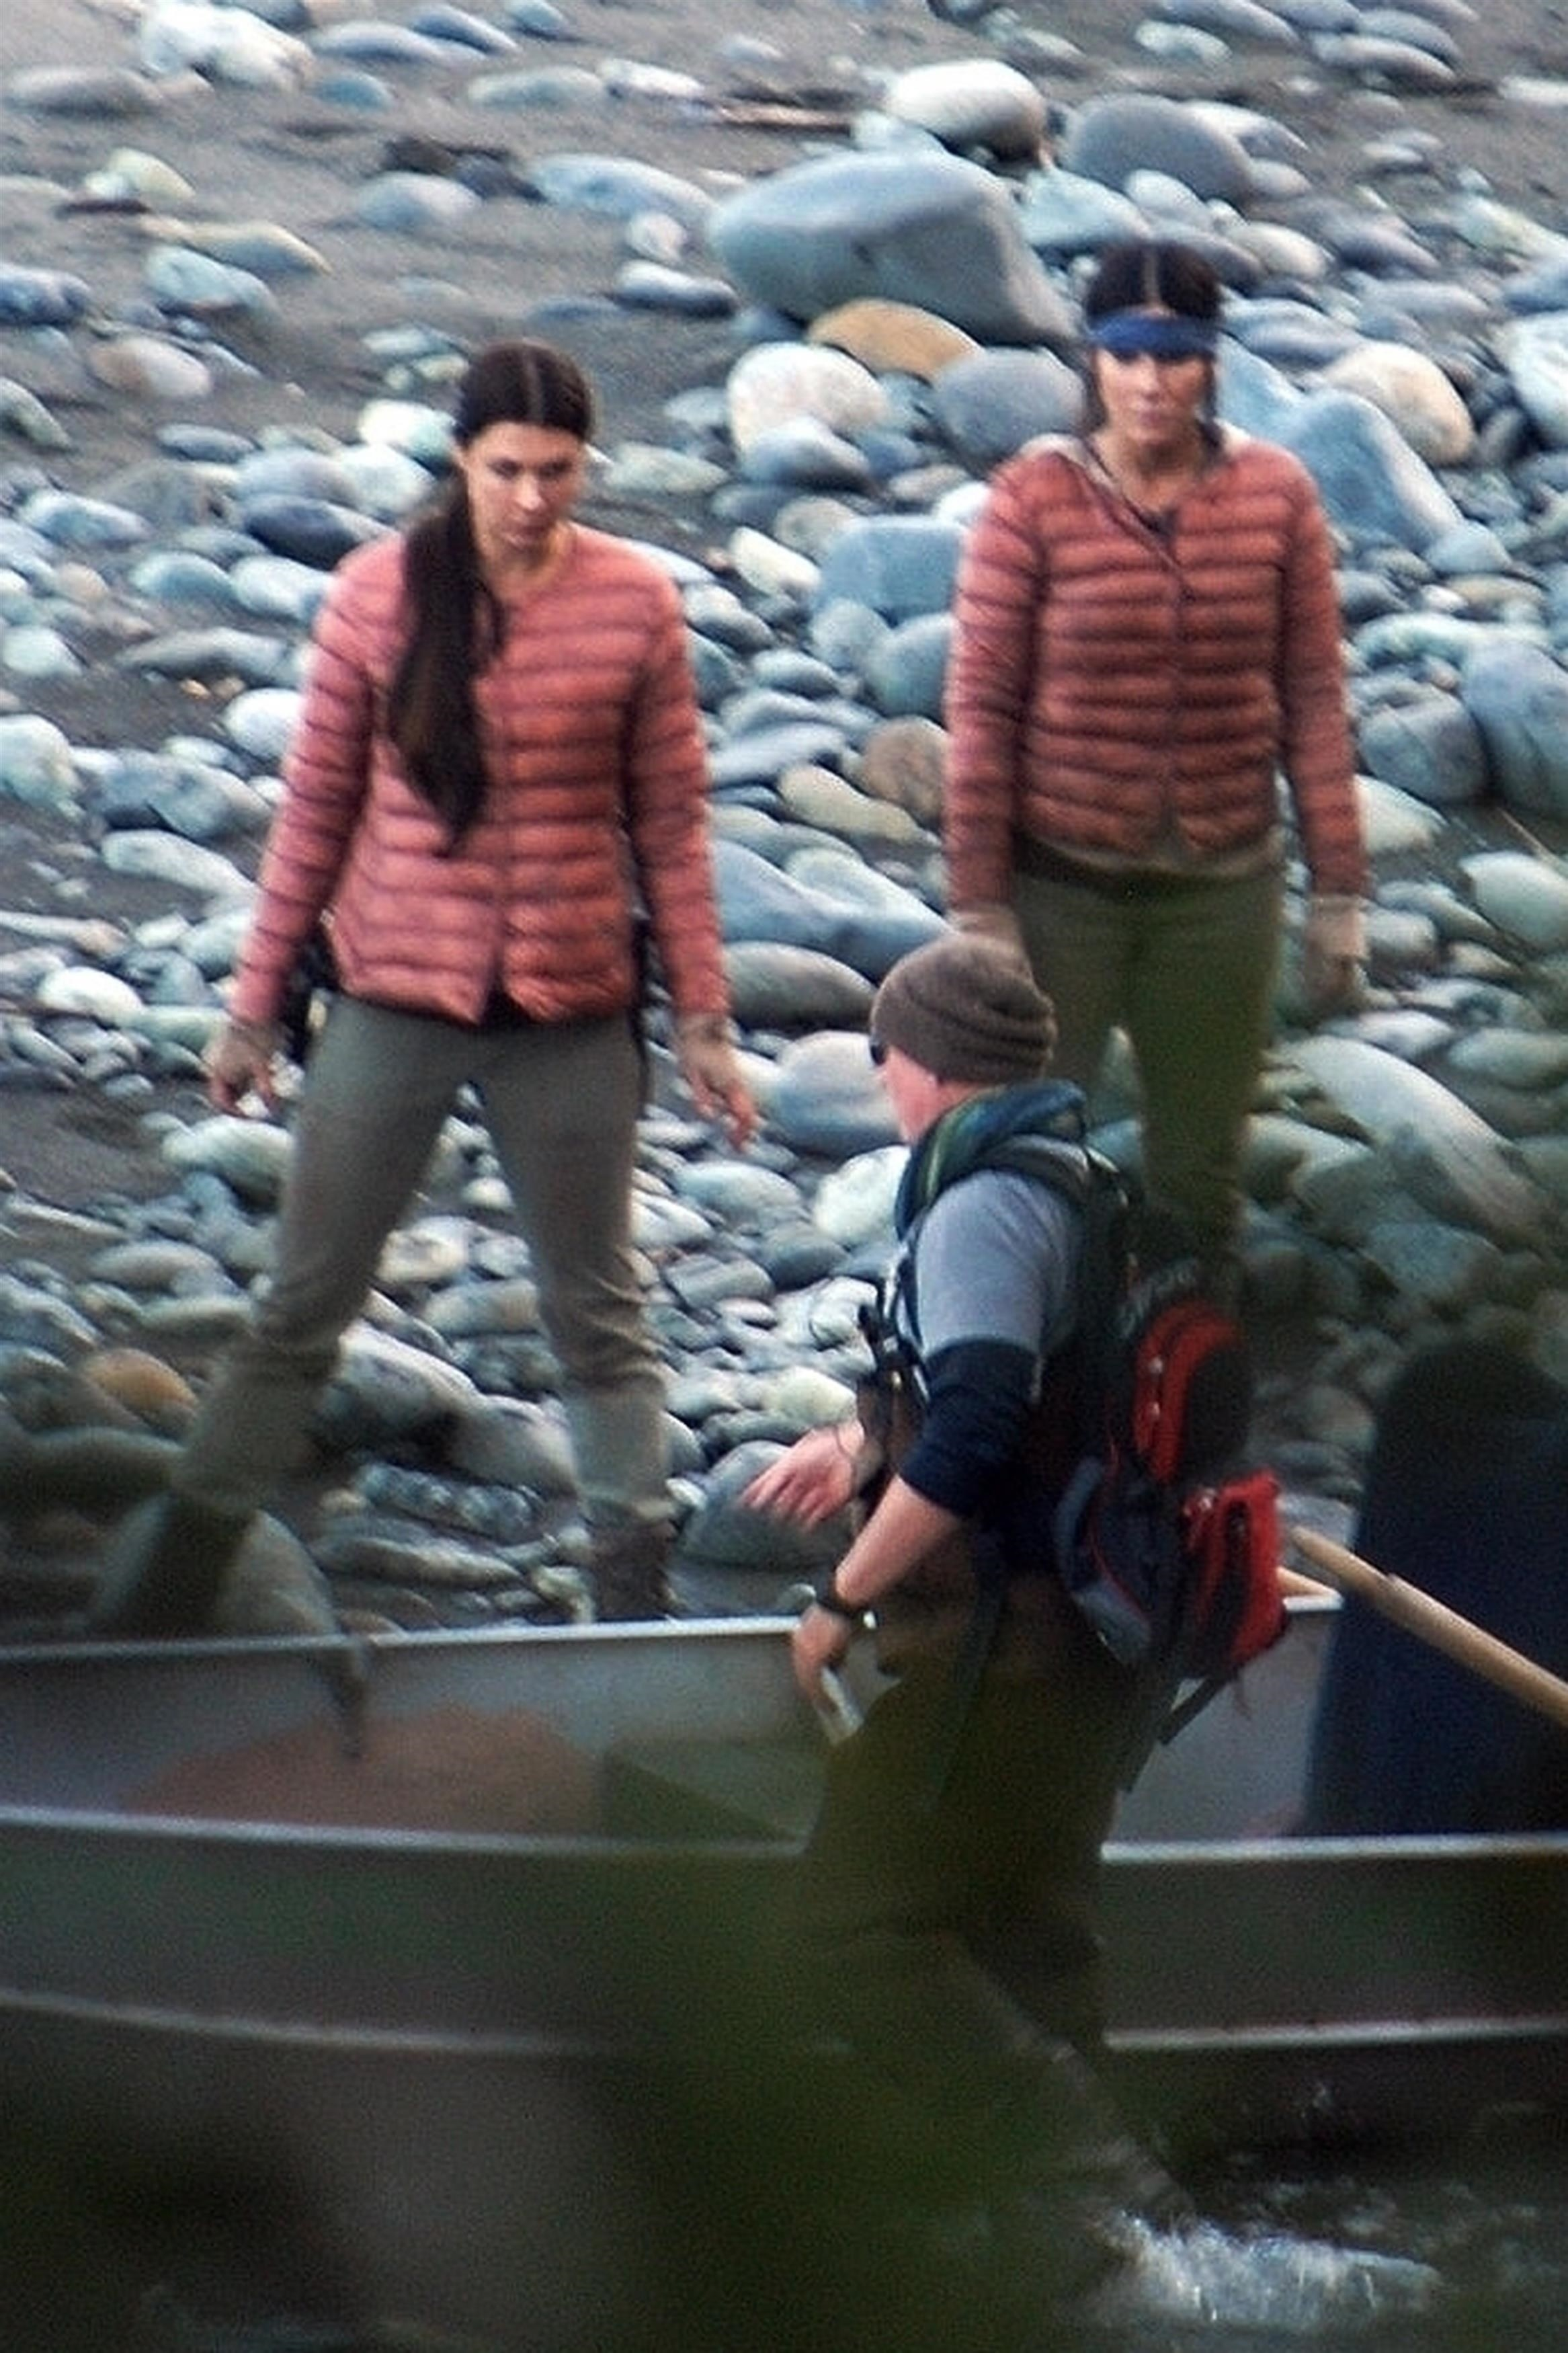 Sandra Bullock and her stunt double wearing red coats while filming